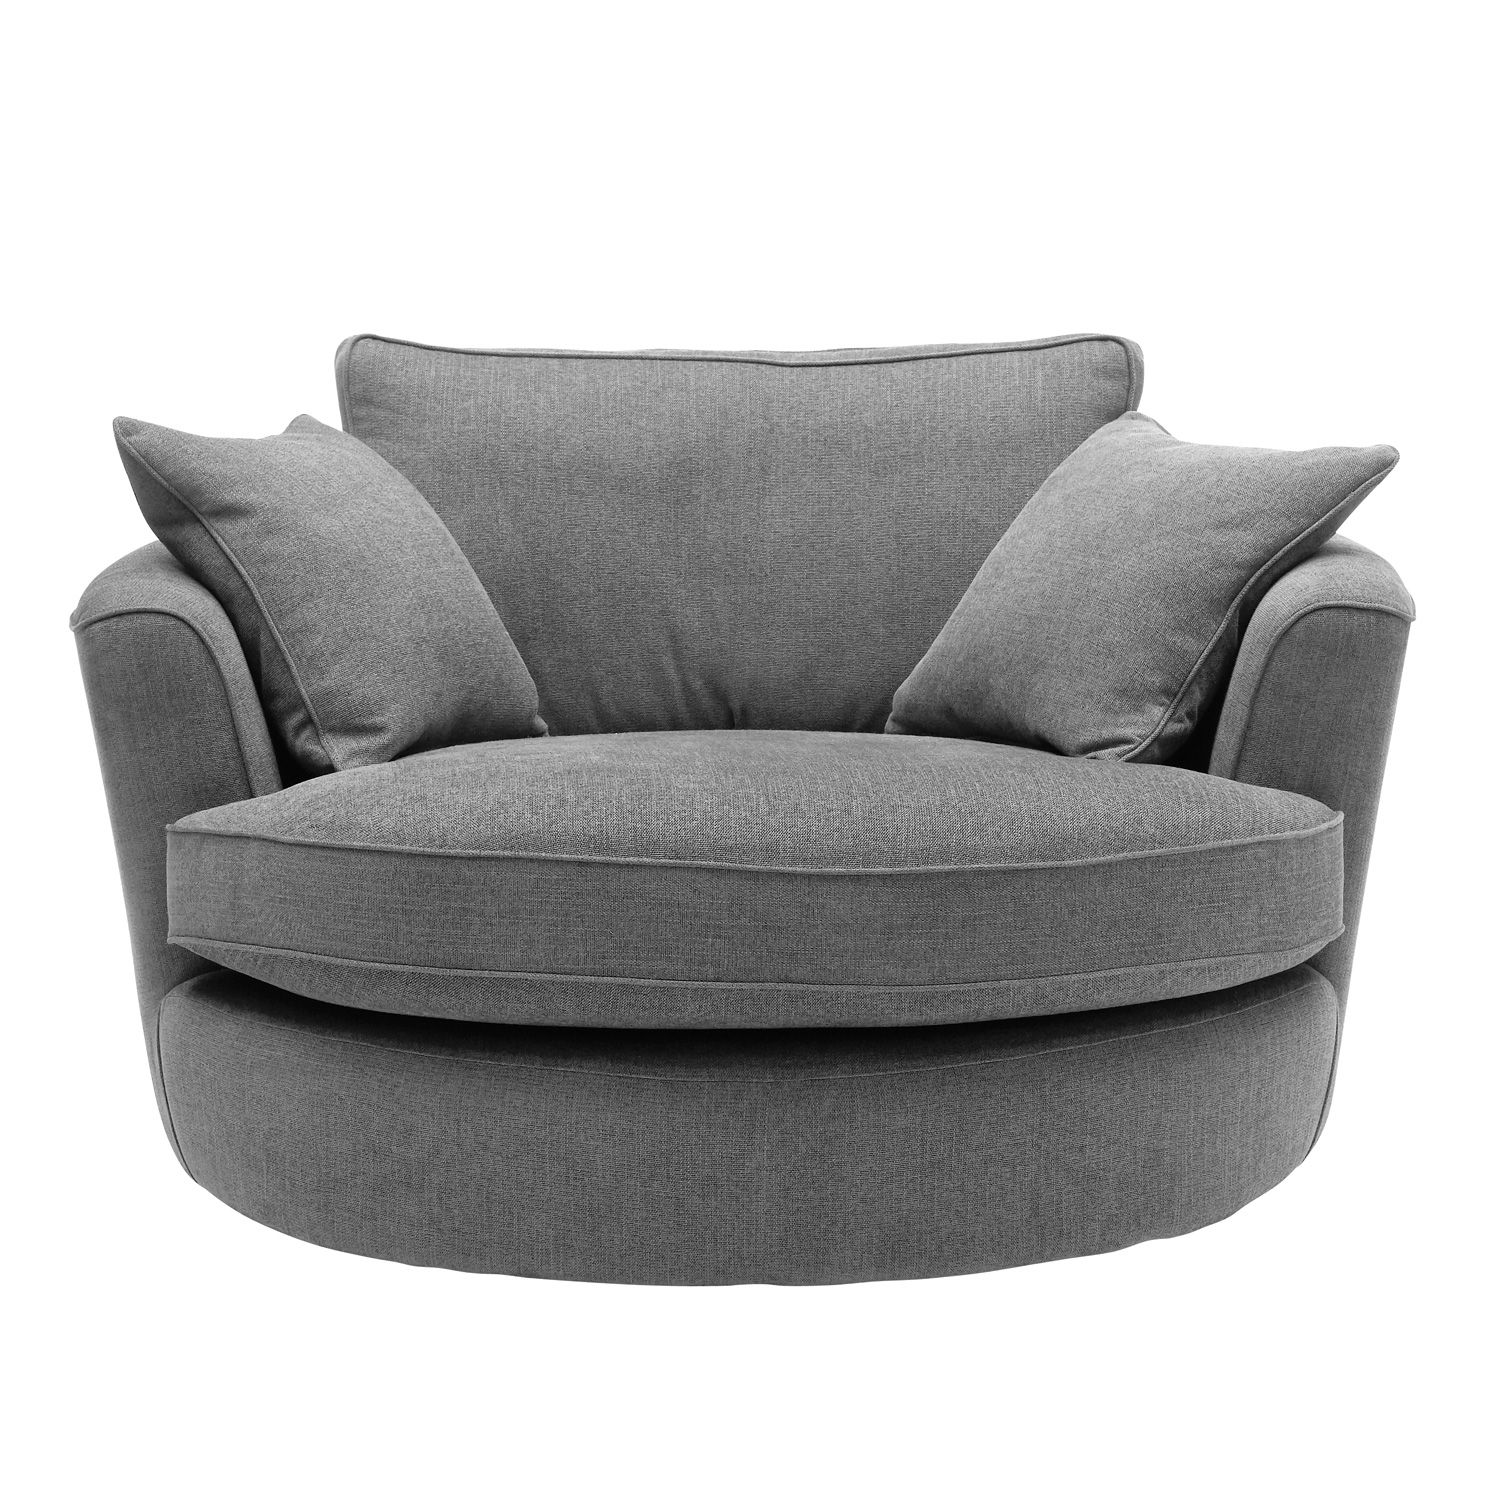 swivel loveseat chair milo round rocker large sofas recliners sofa gray reclinersmall reclining love leather at baughman